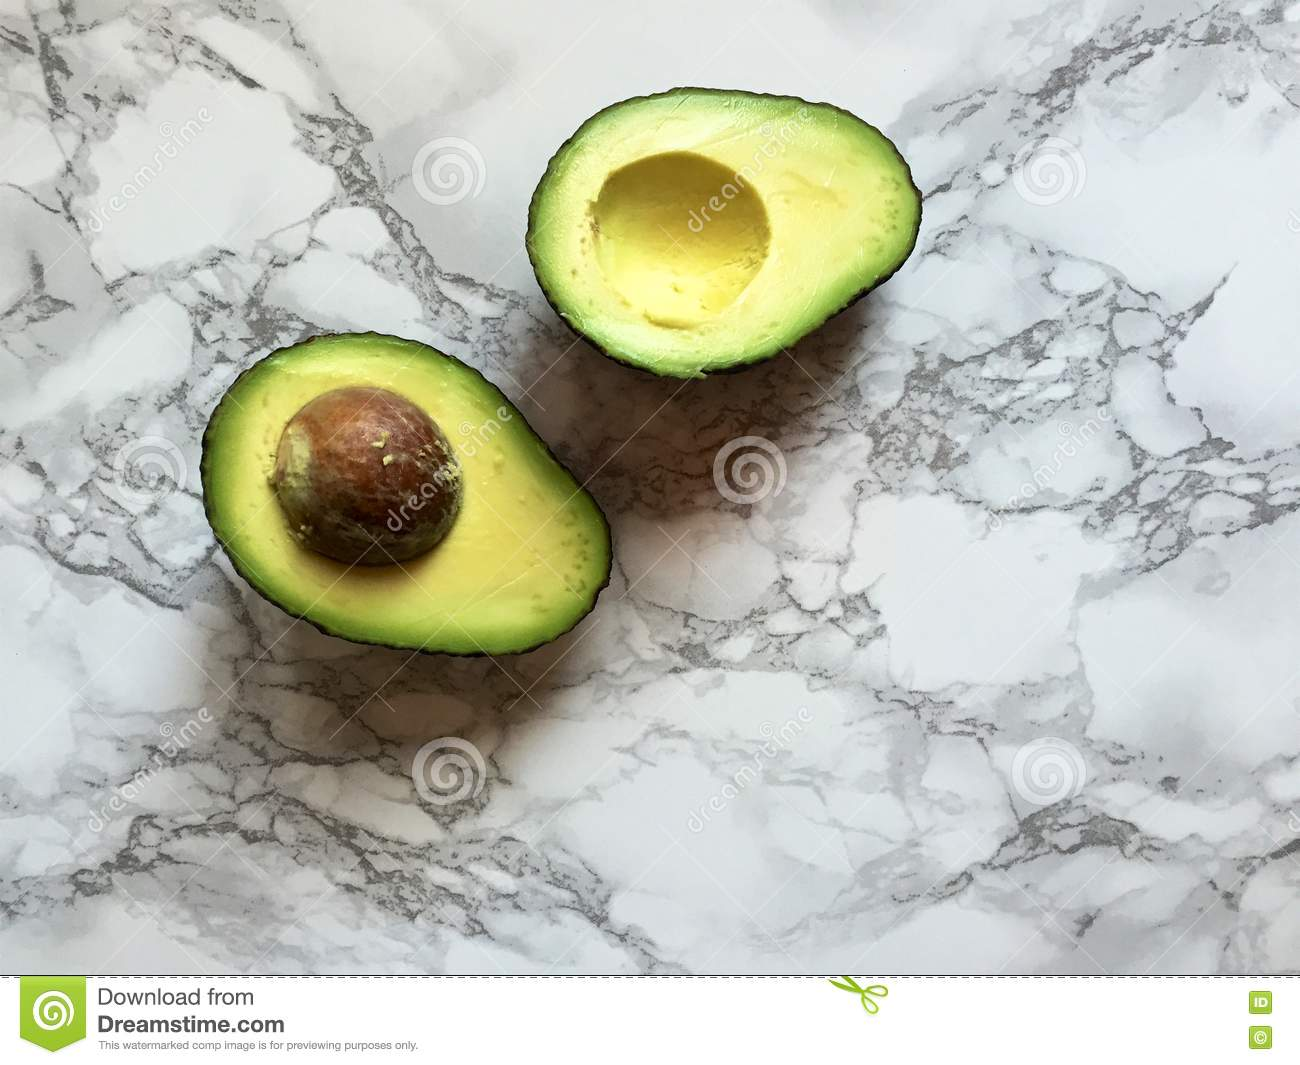 Two fresh avocado halves with pit on marble kitchen countertop